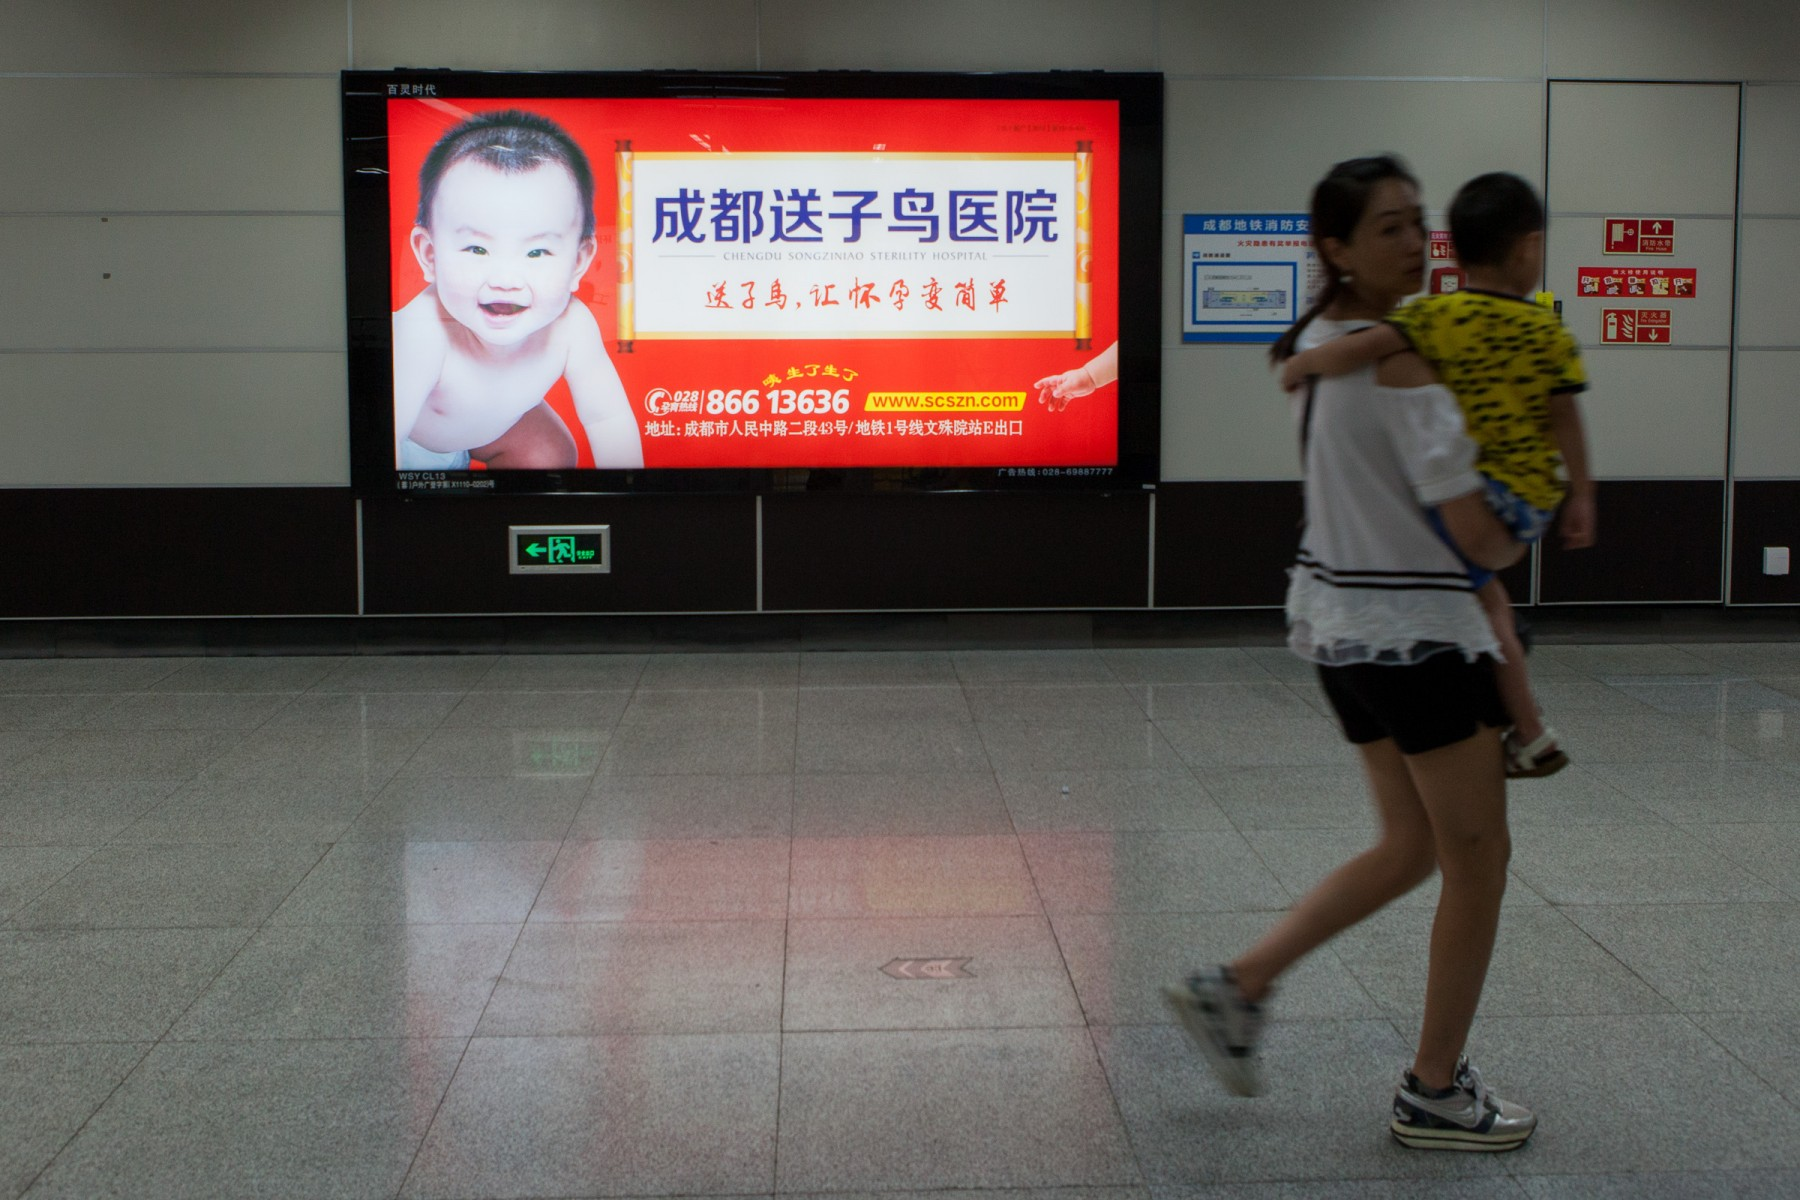 An ad for a Sterility Clinic in Chengdu, Sichuan Province, China.